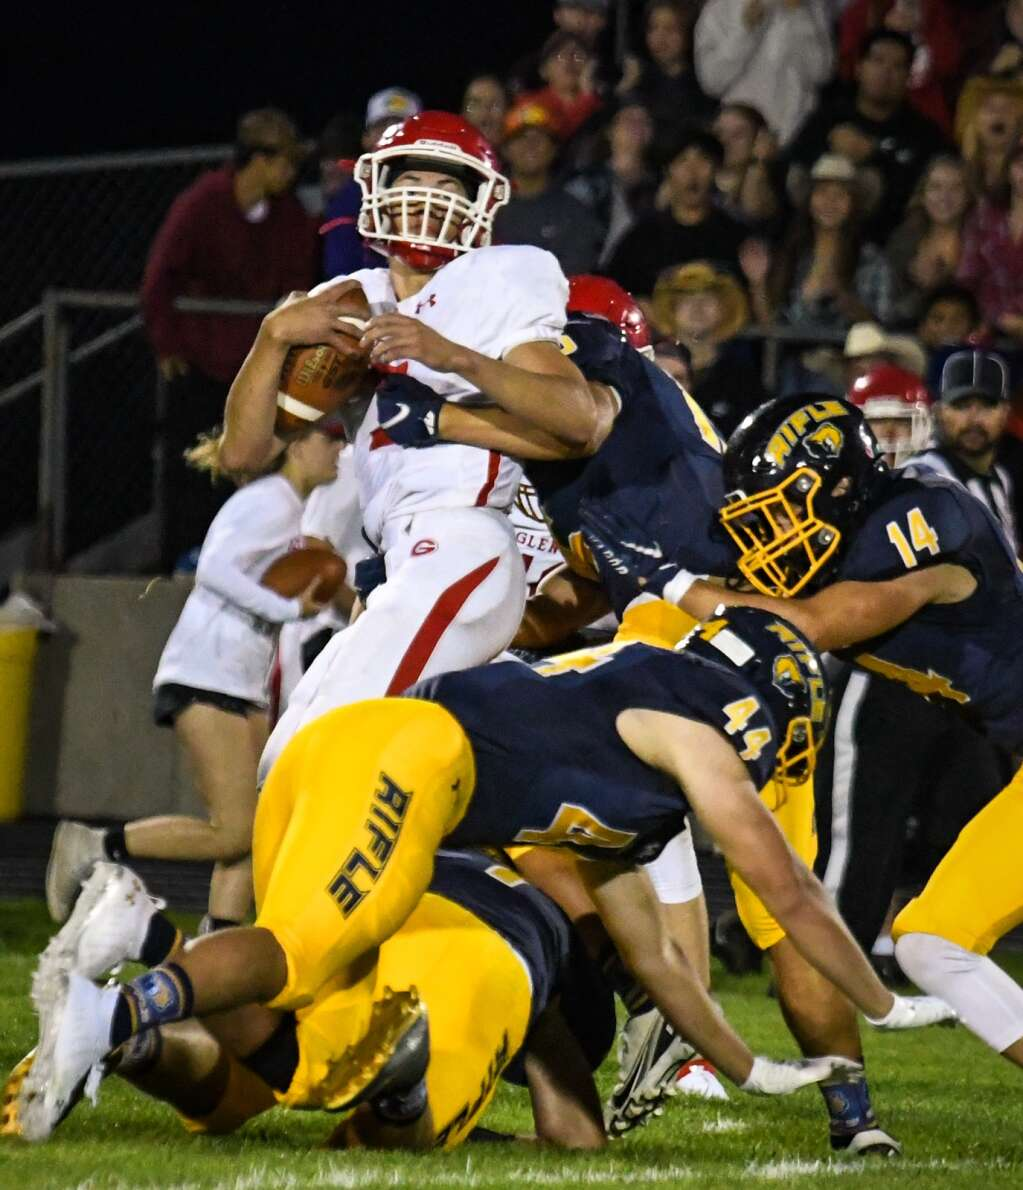 Glenwood Springs Demon Joaquin Sandoval is sacked by the defending Rifle Bears during Friday night's rivalry game.  Chelsea Self / Post Independent